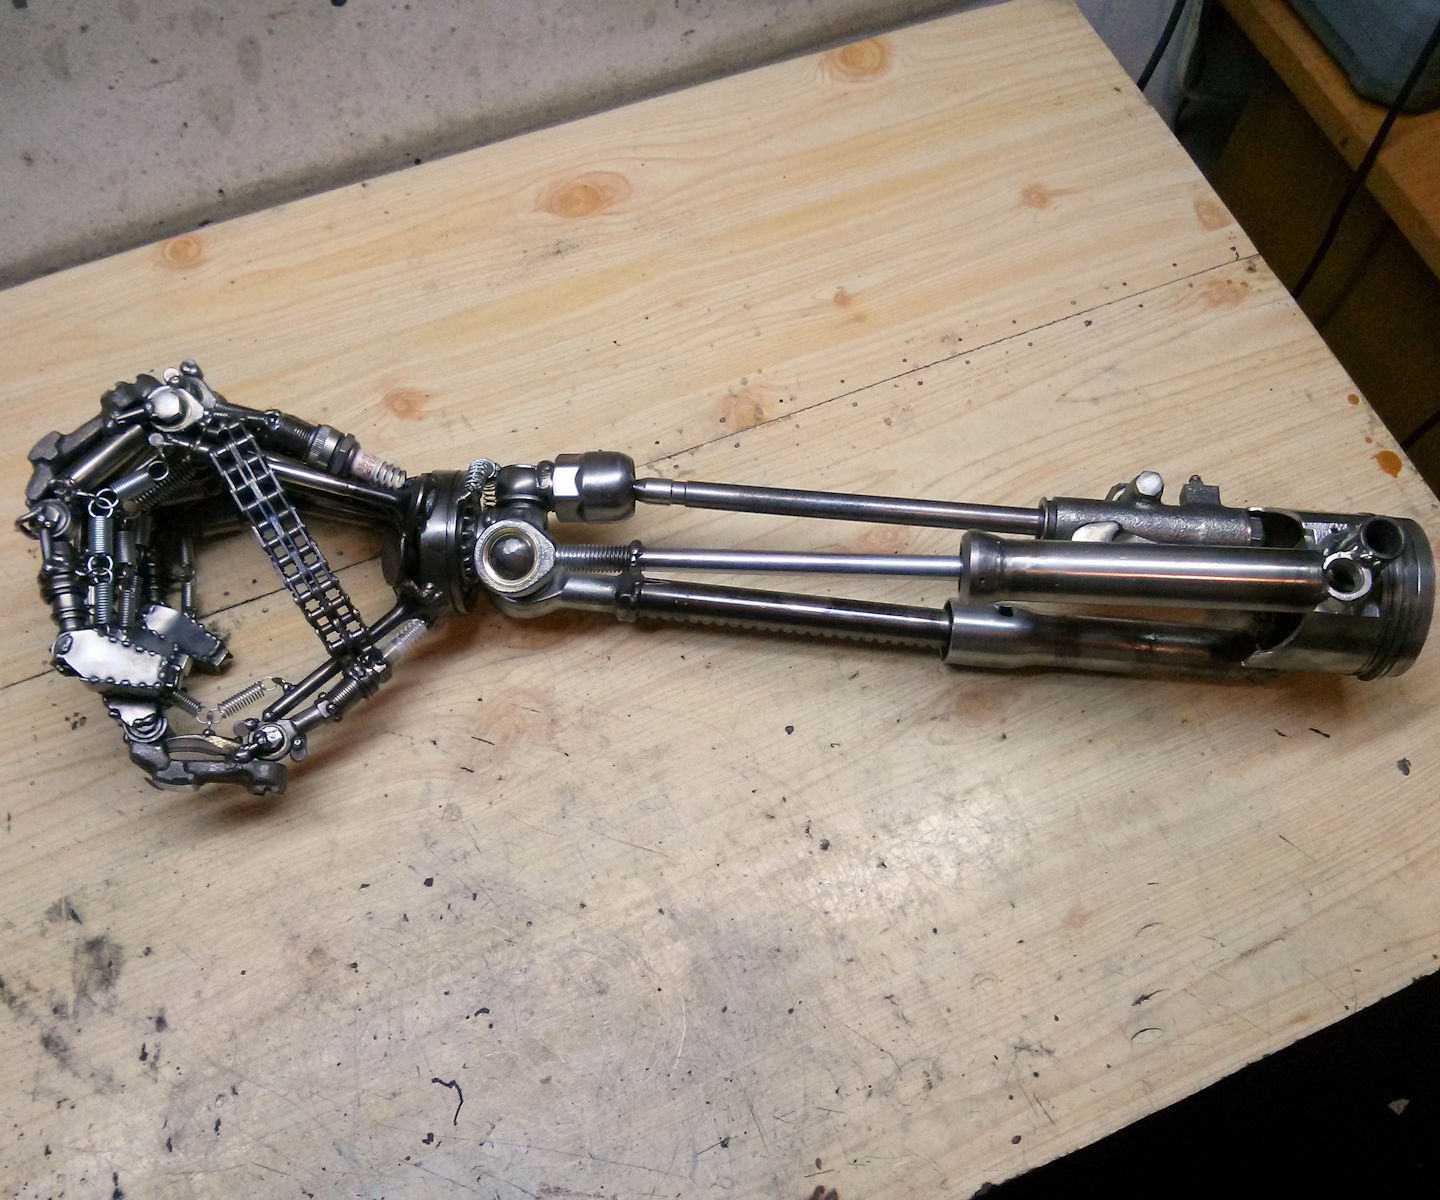 Robot arm inspired by Terminator movie